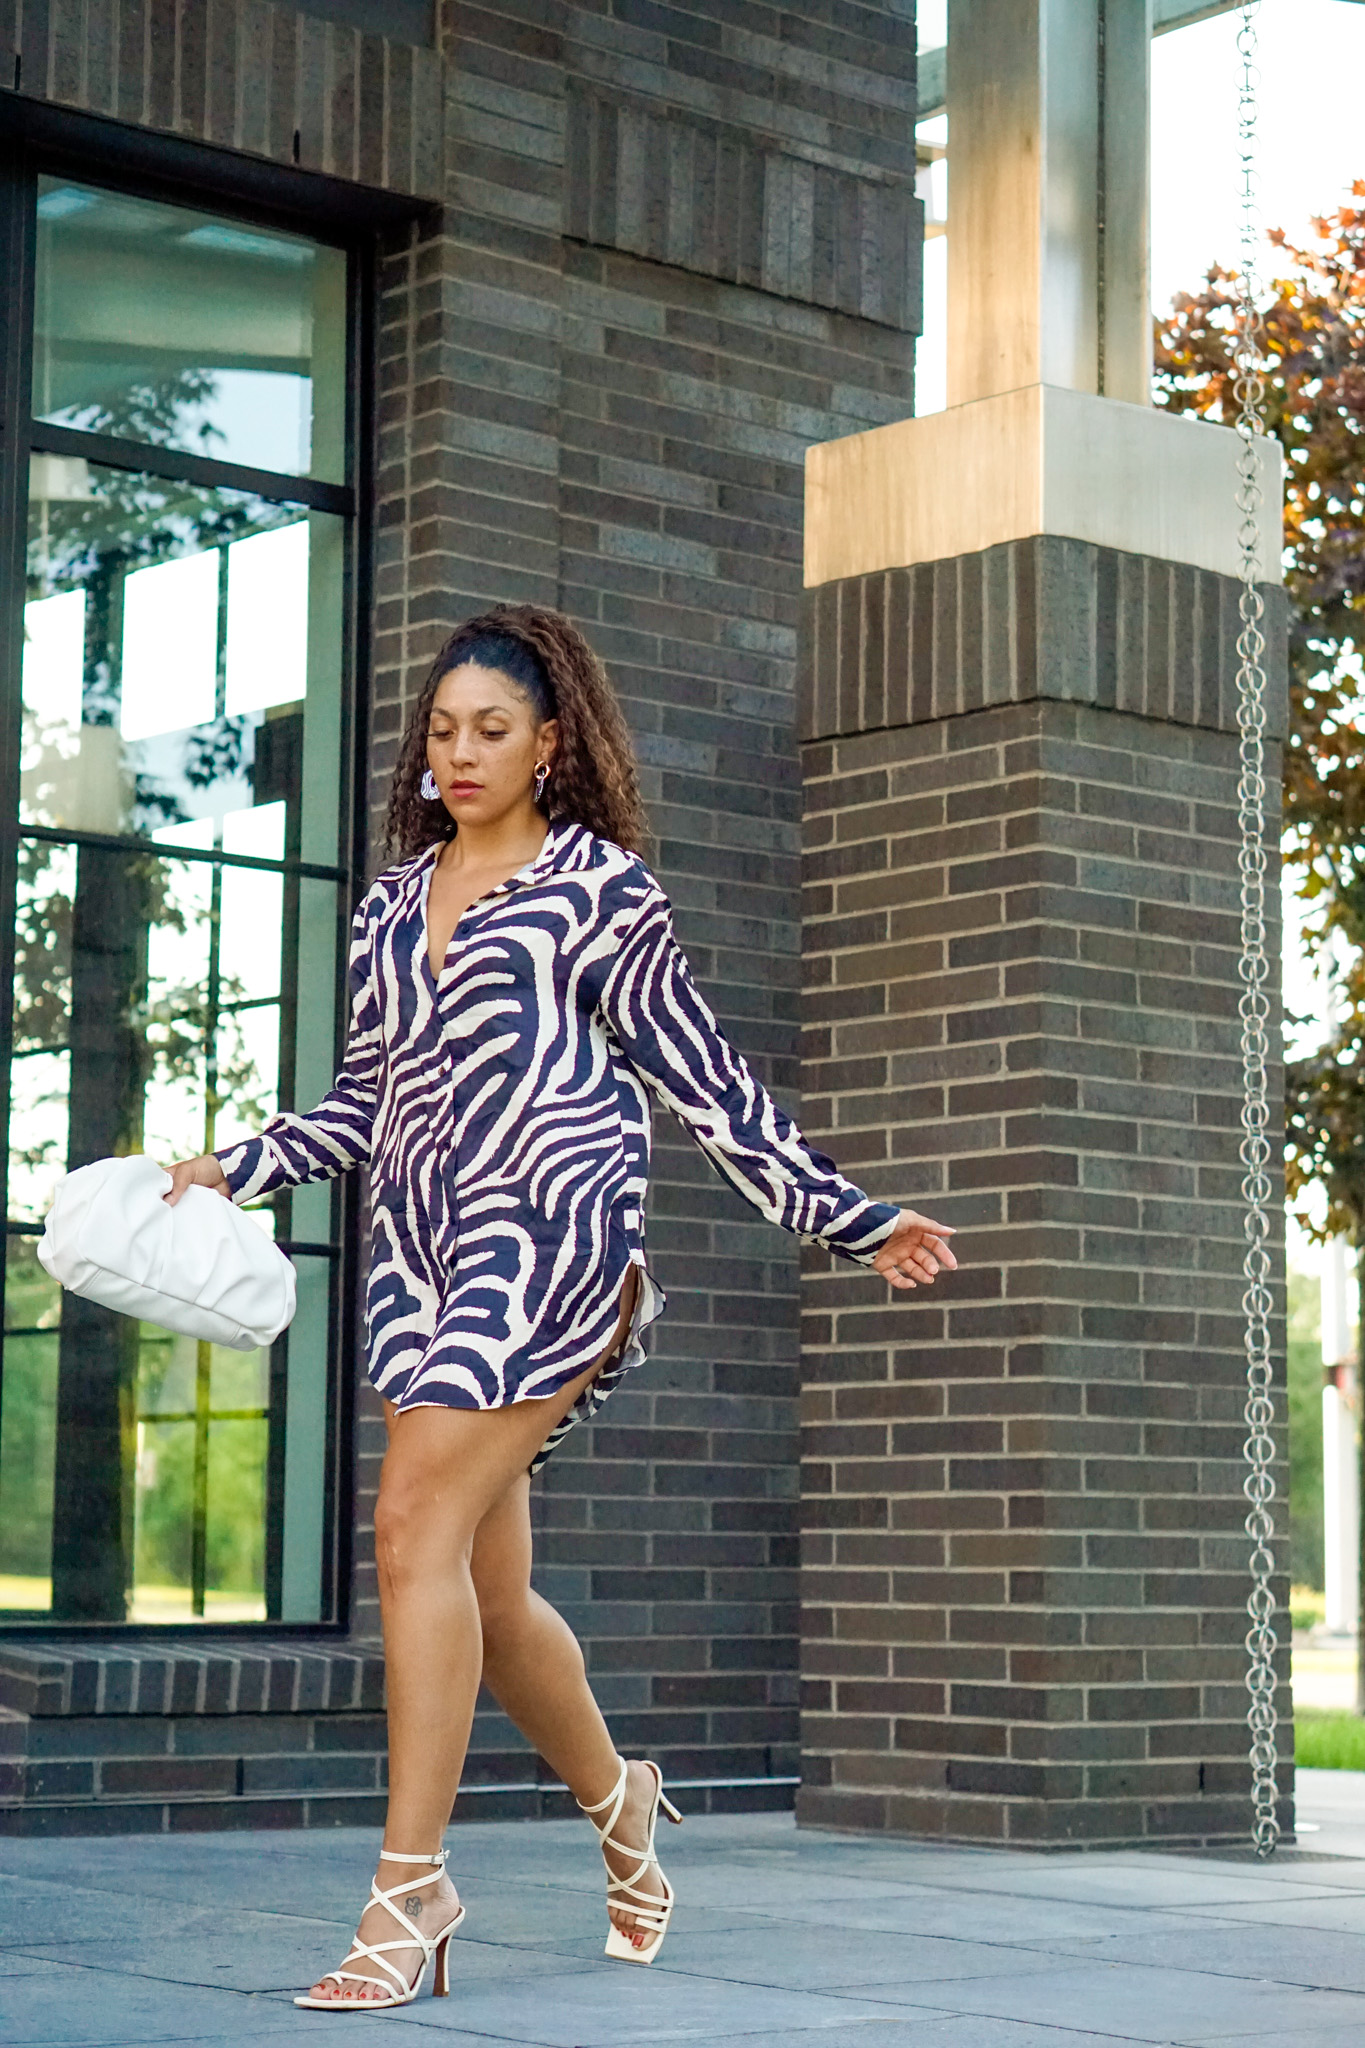 zebra print outfit ideas for pear shaped women, zebra print outfit ideas black girl, zebra print street style outfit, how to style zebra print